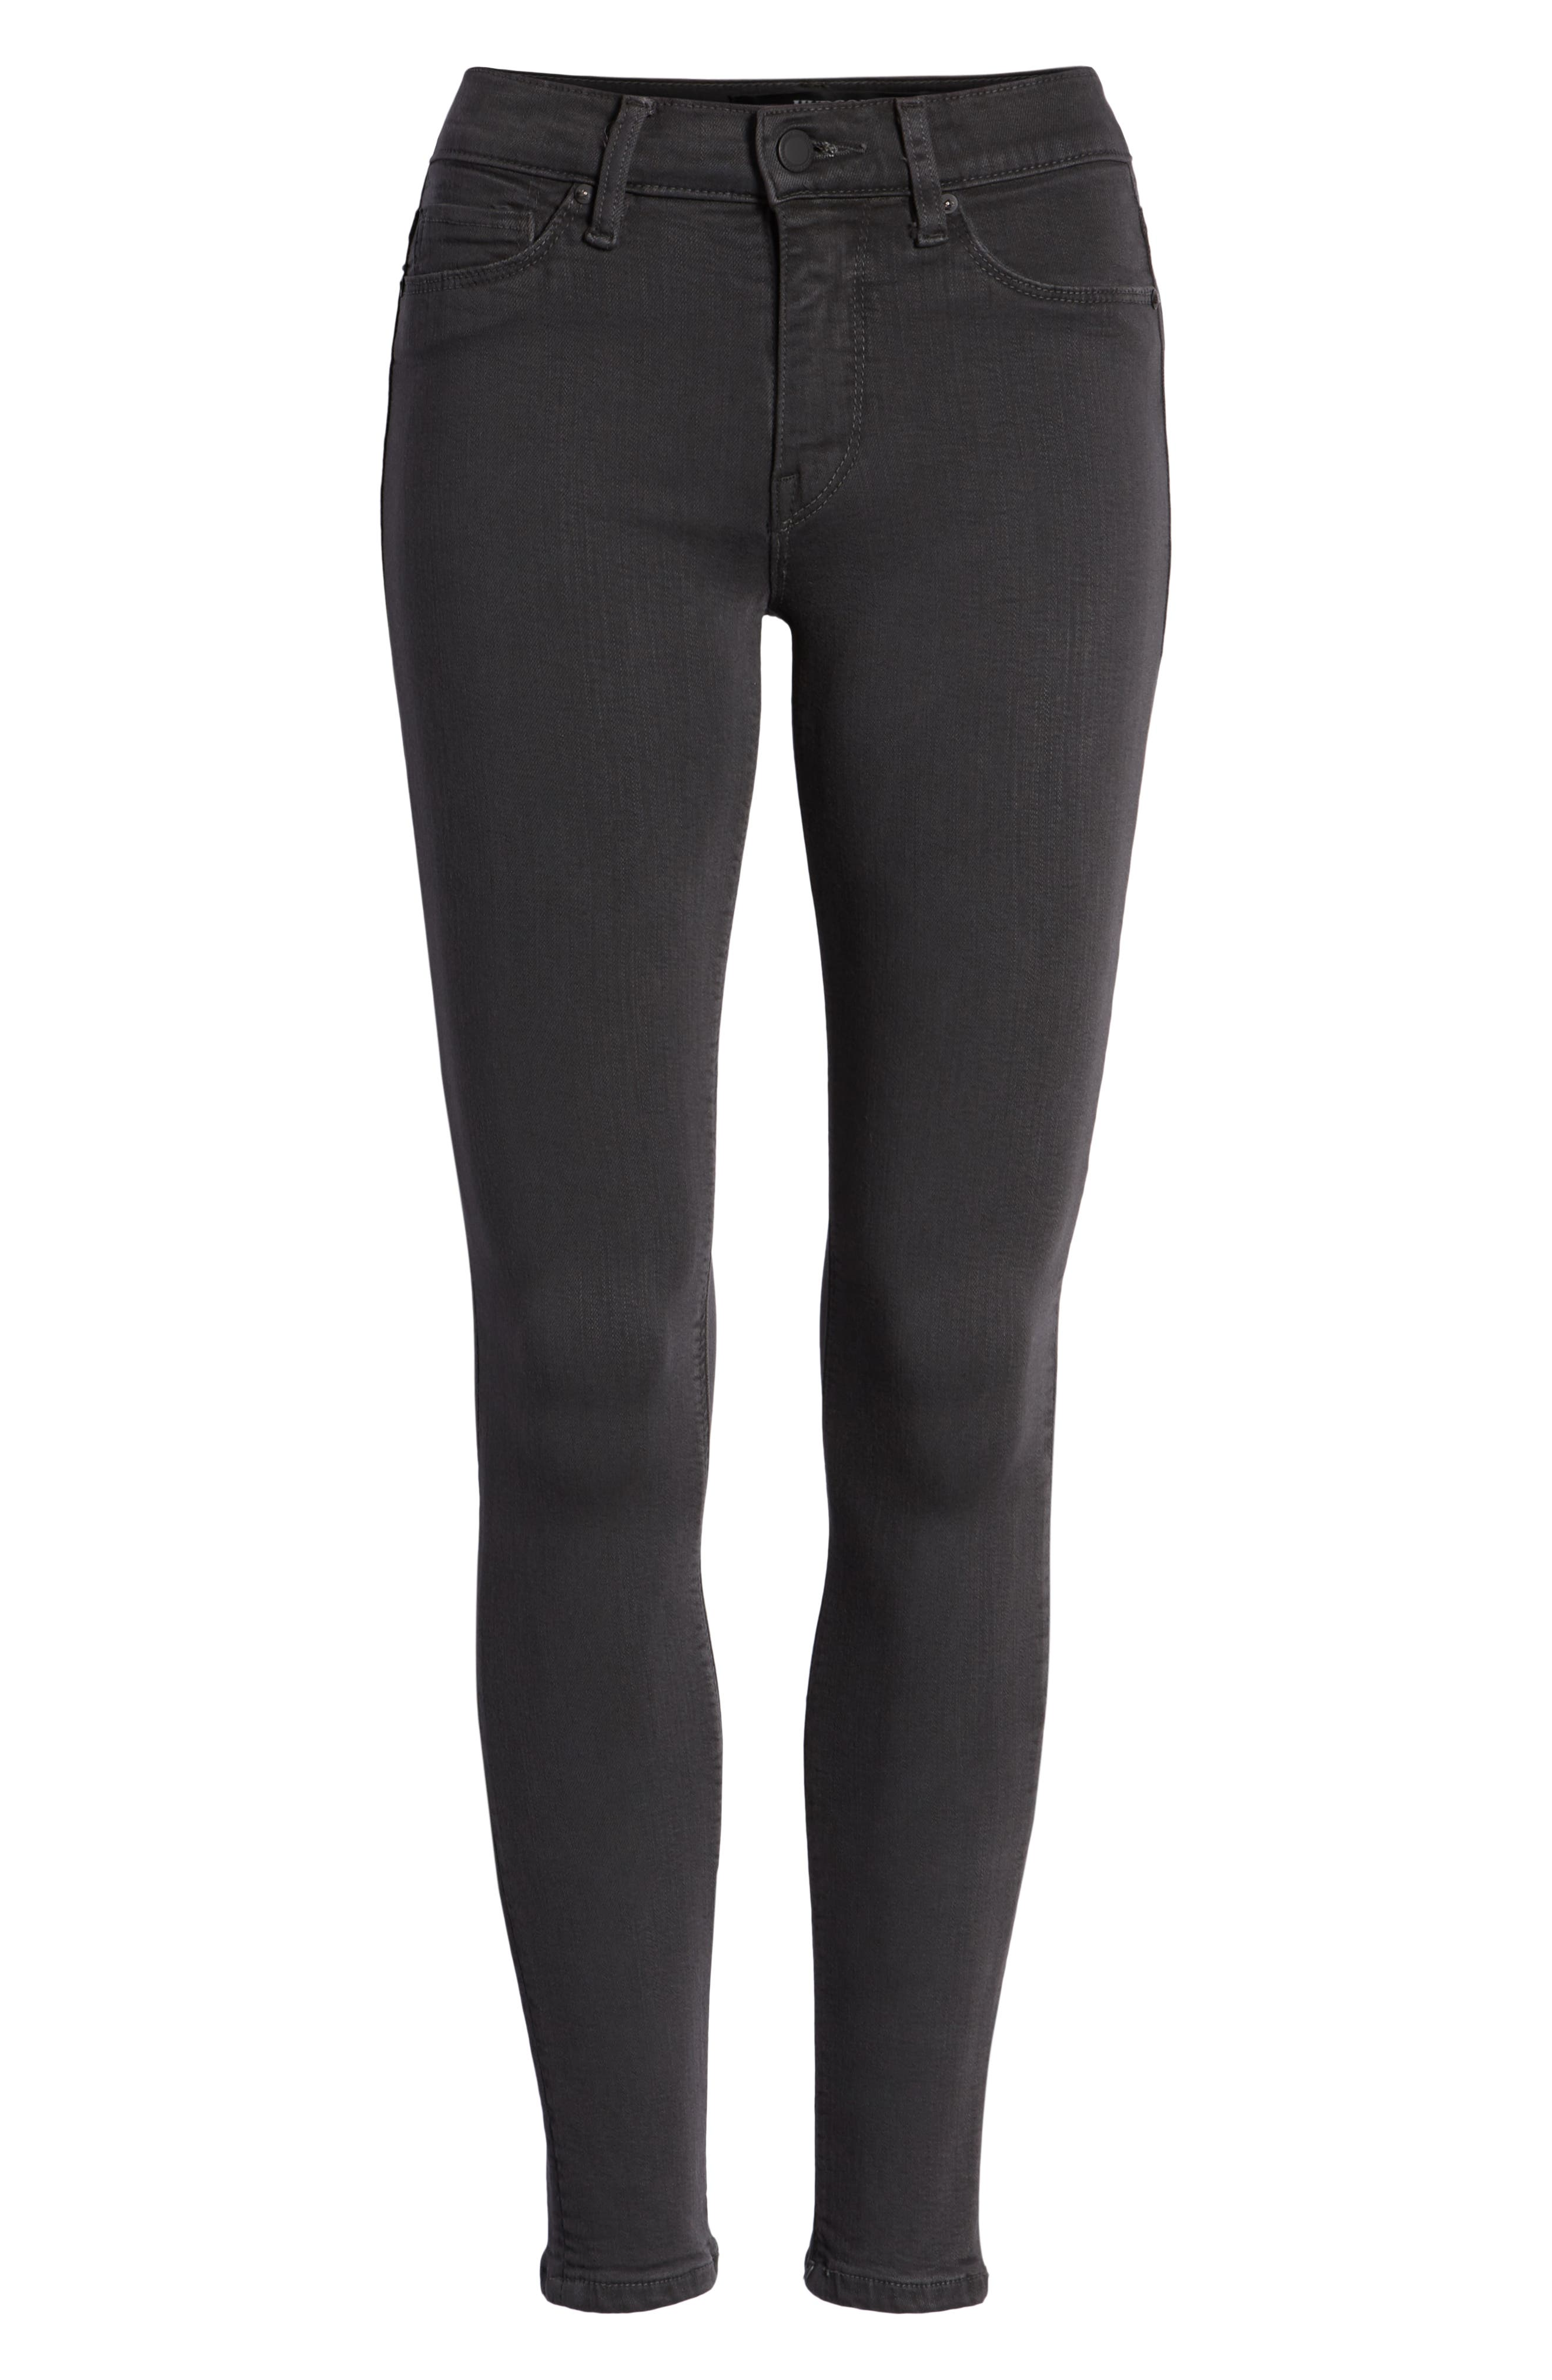 HudsonJeans Nico Coated Super Skinny Jeans,                             Alternate thumbnail 7, color,                             Distressed Graphite